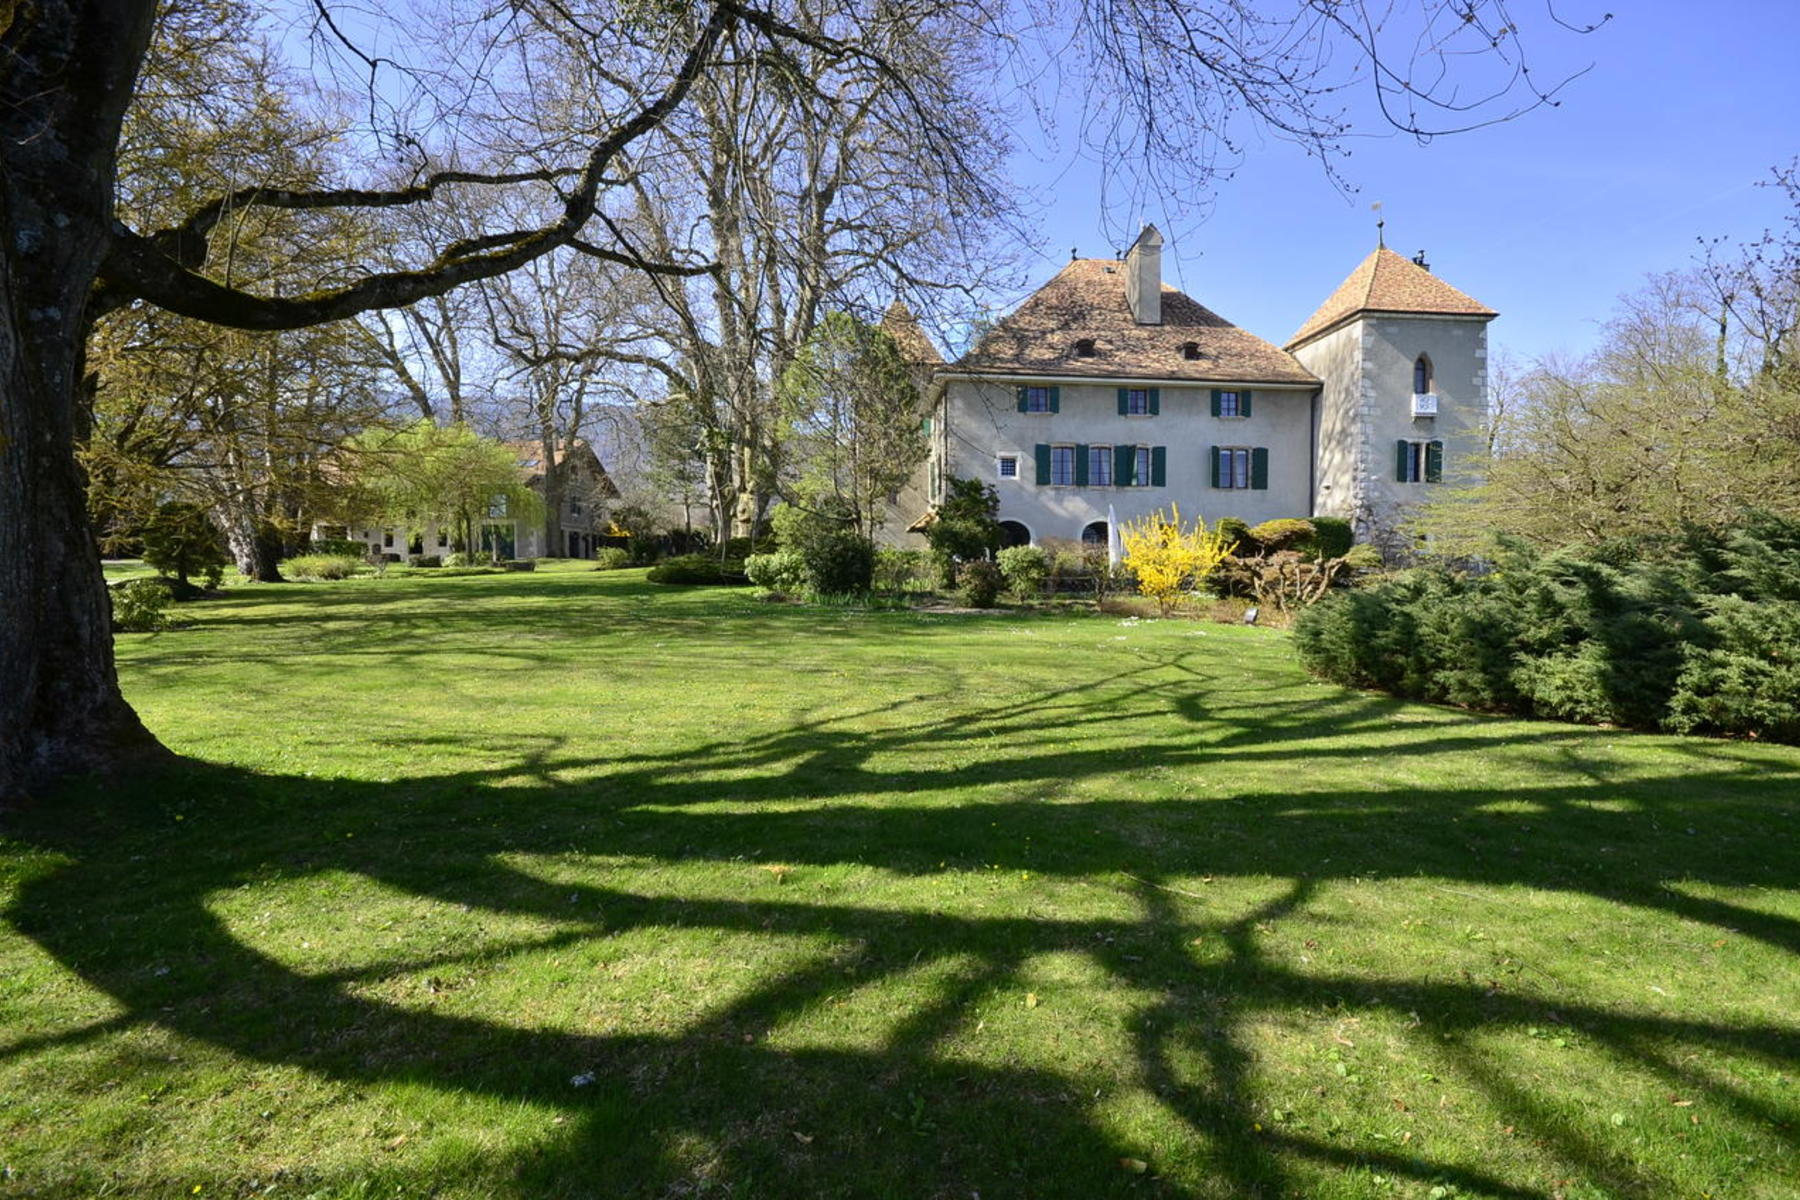 Single Family Home for Sale at Magnificent 15th century chateau Proche de Genève Gingins, Vaud, 1276 Switzerland